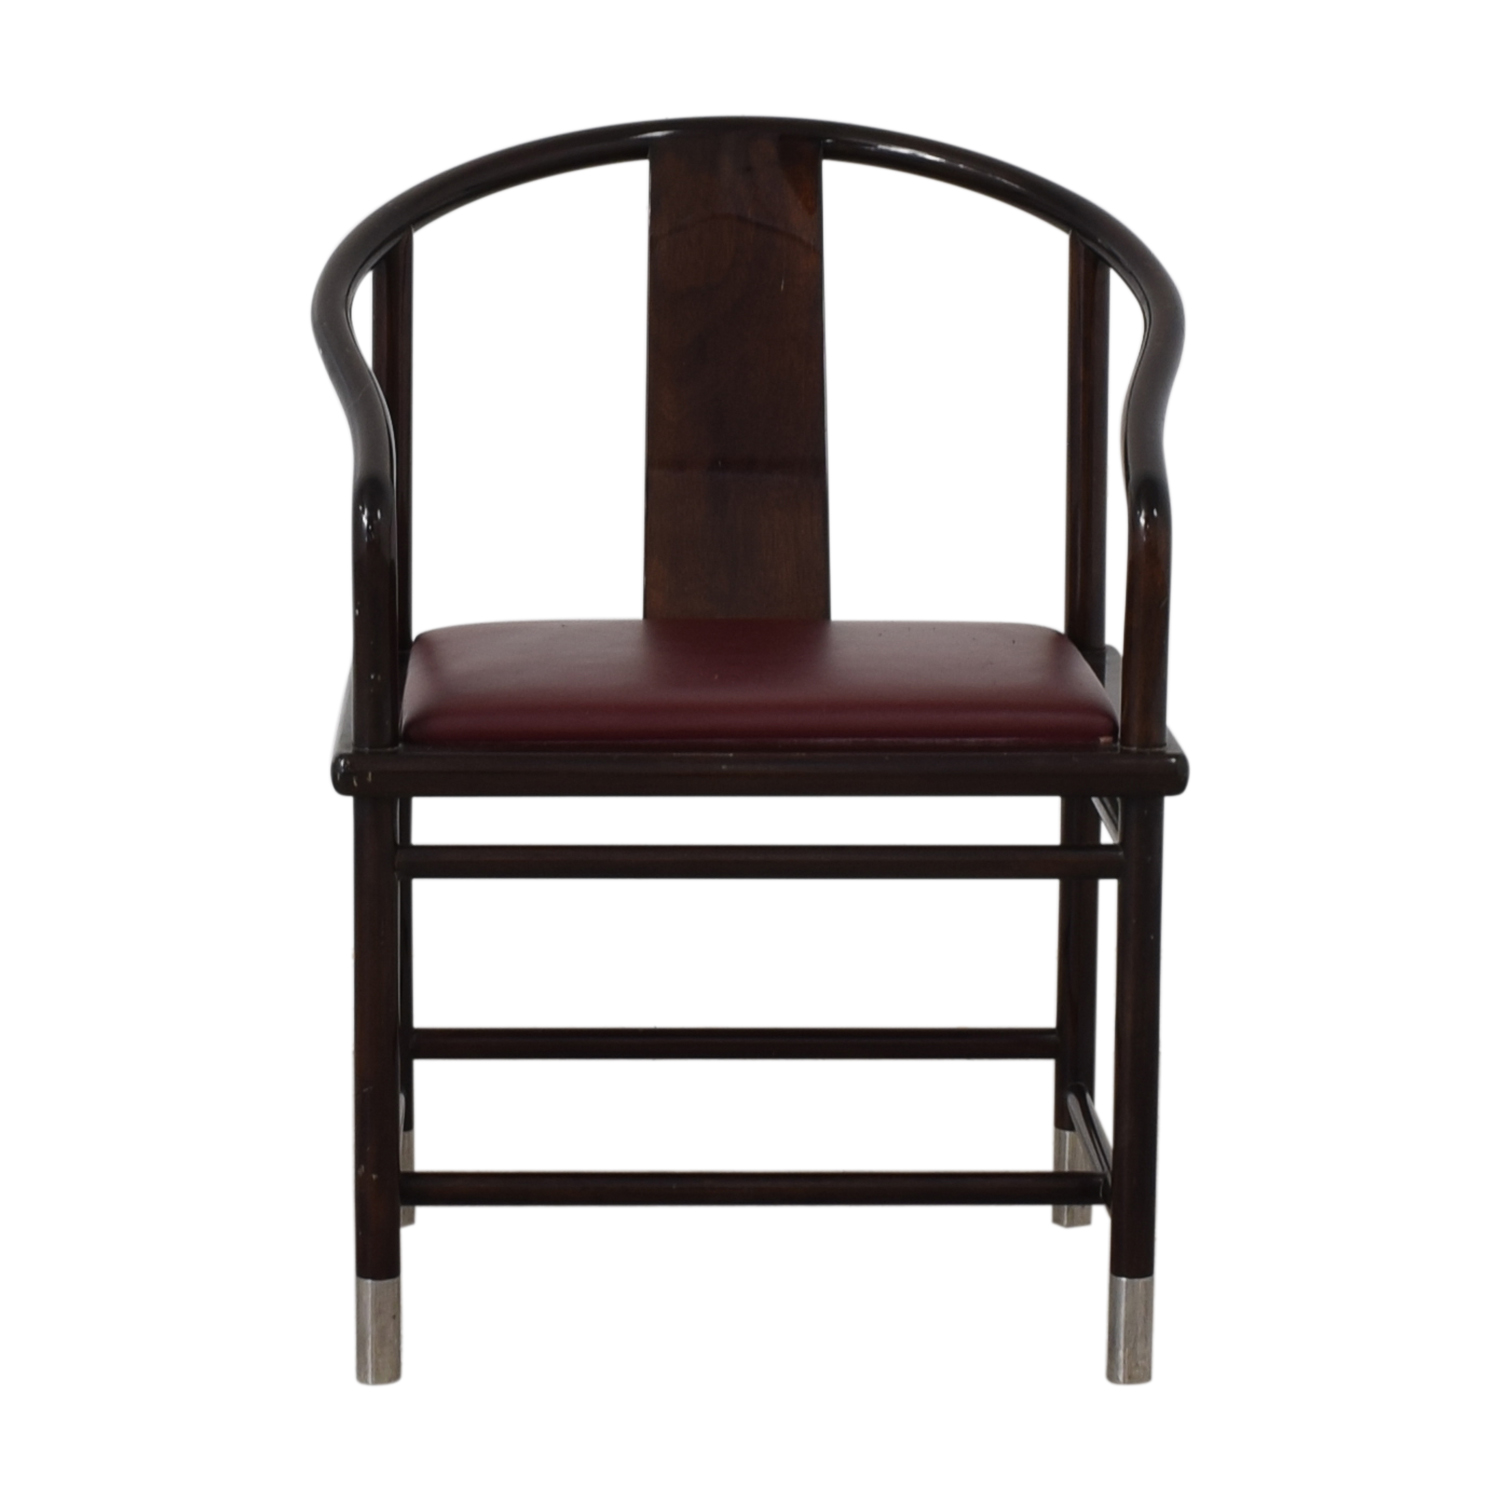 shop Brueton Wood and Burgundy Upholstered Accent Chair Brueton